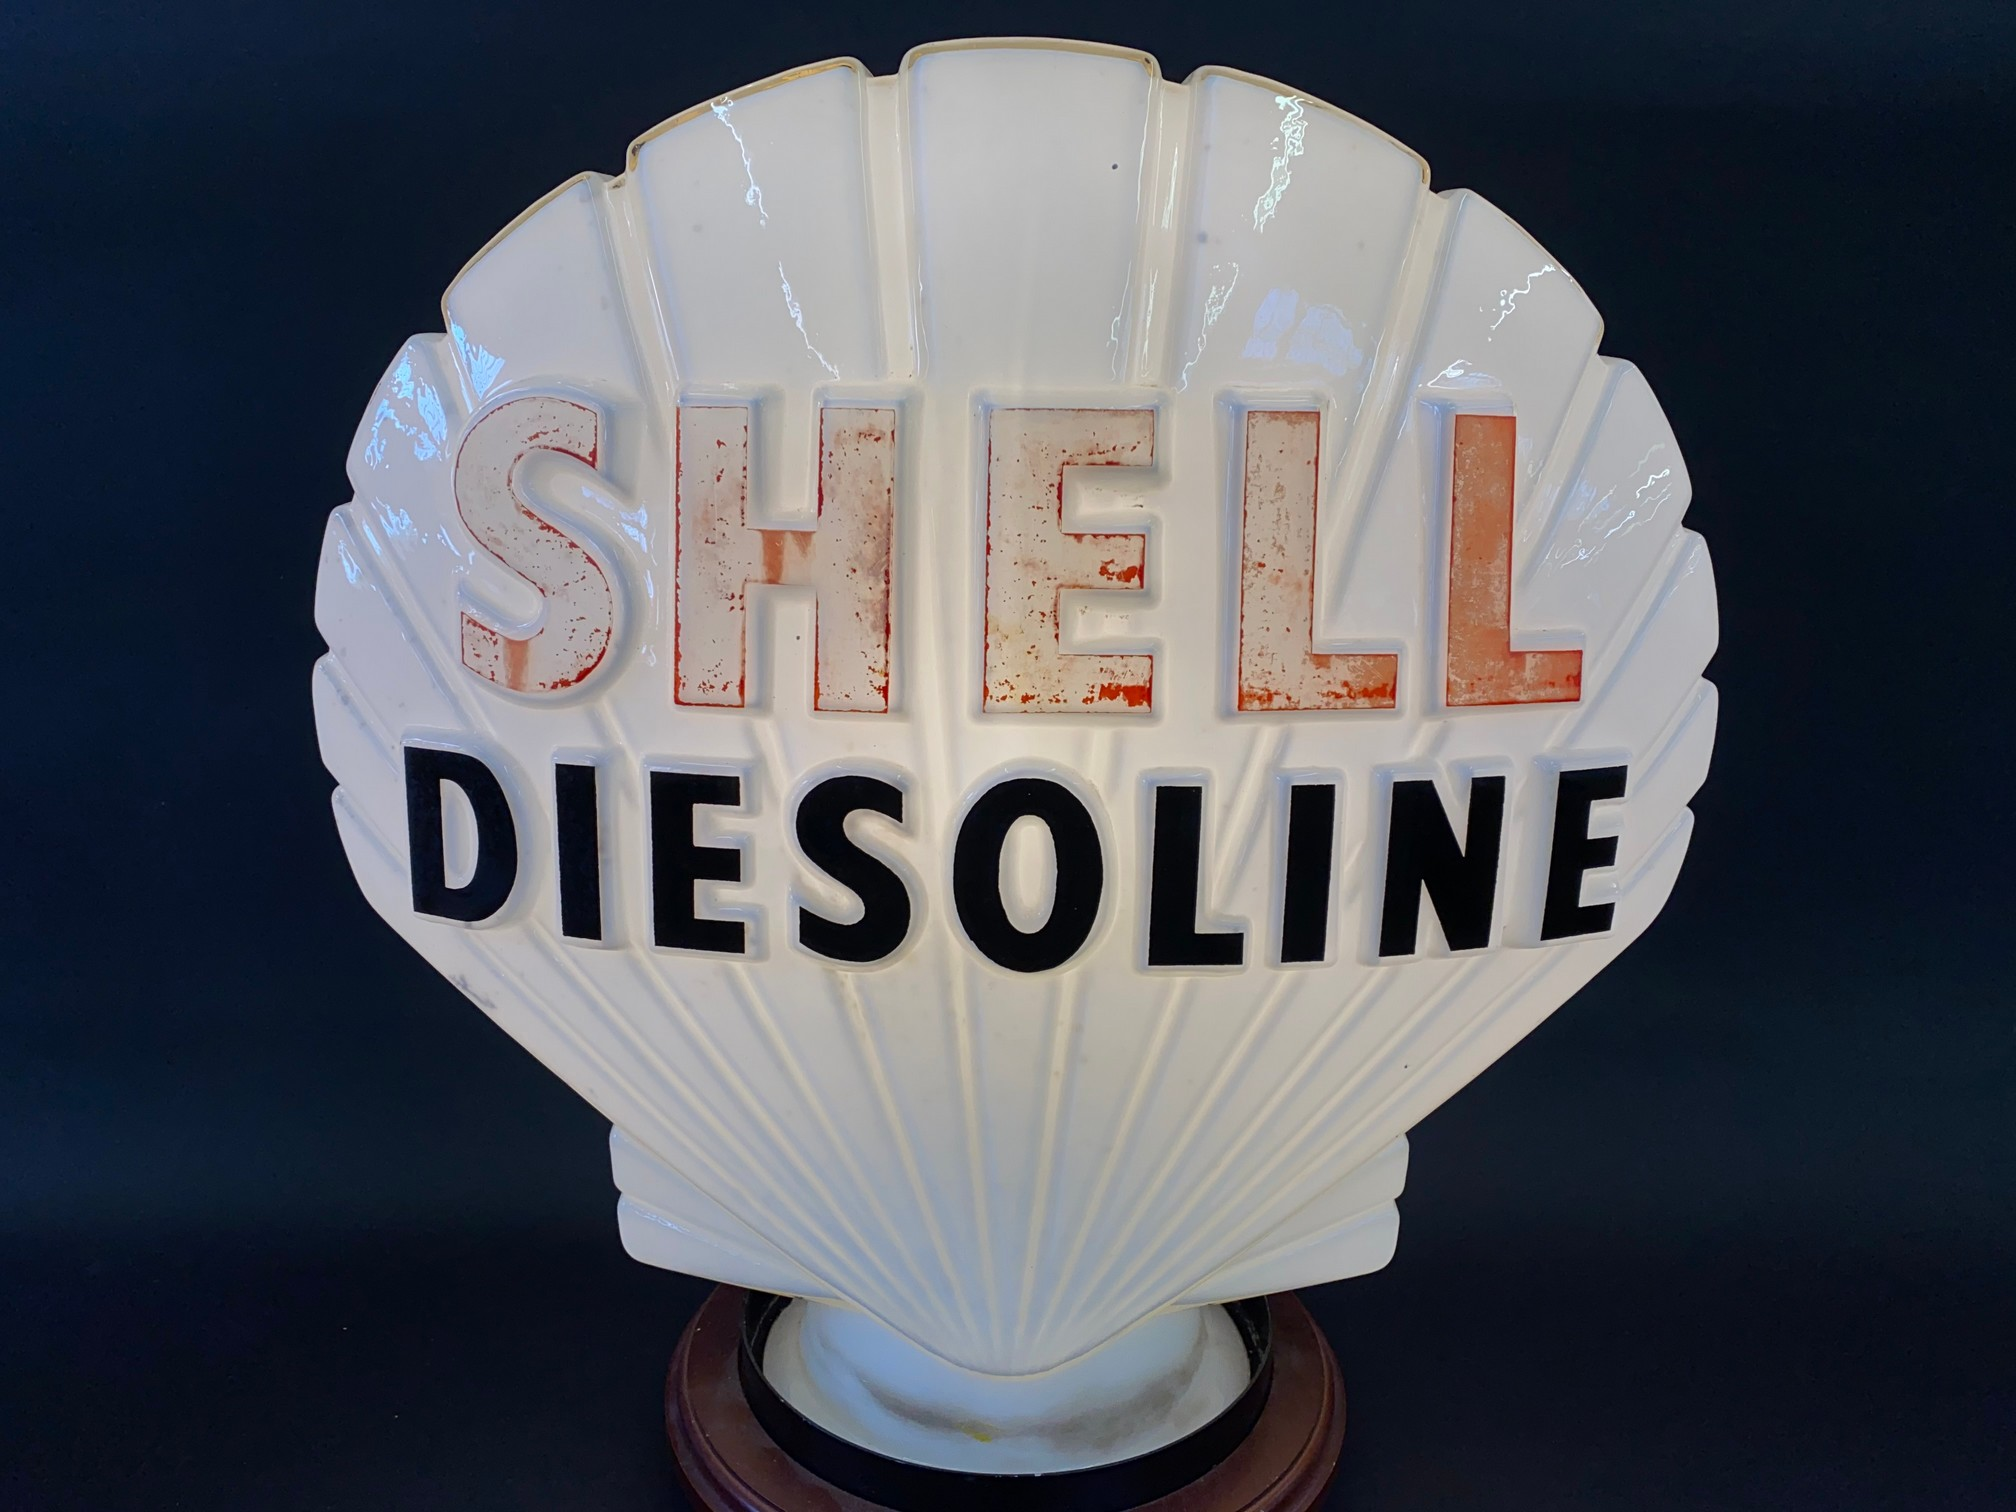 A Shell Diesoline glass petrol pump globe by Hailware, faint stamps underneath, minor nibbles to - Image 2 of 4